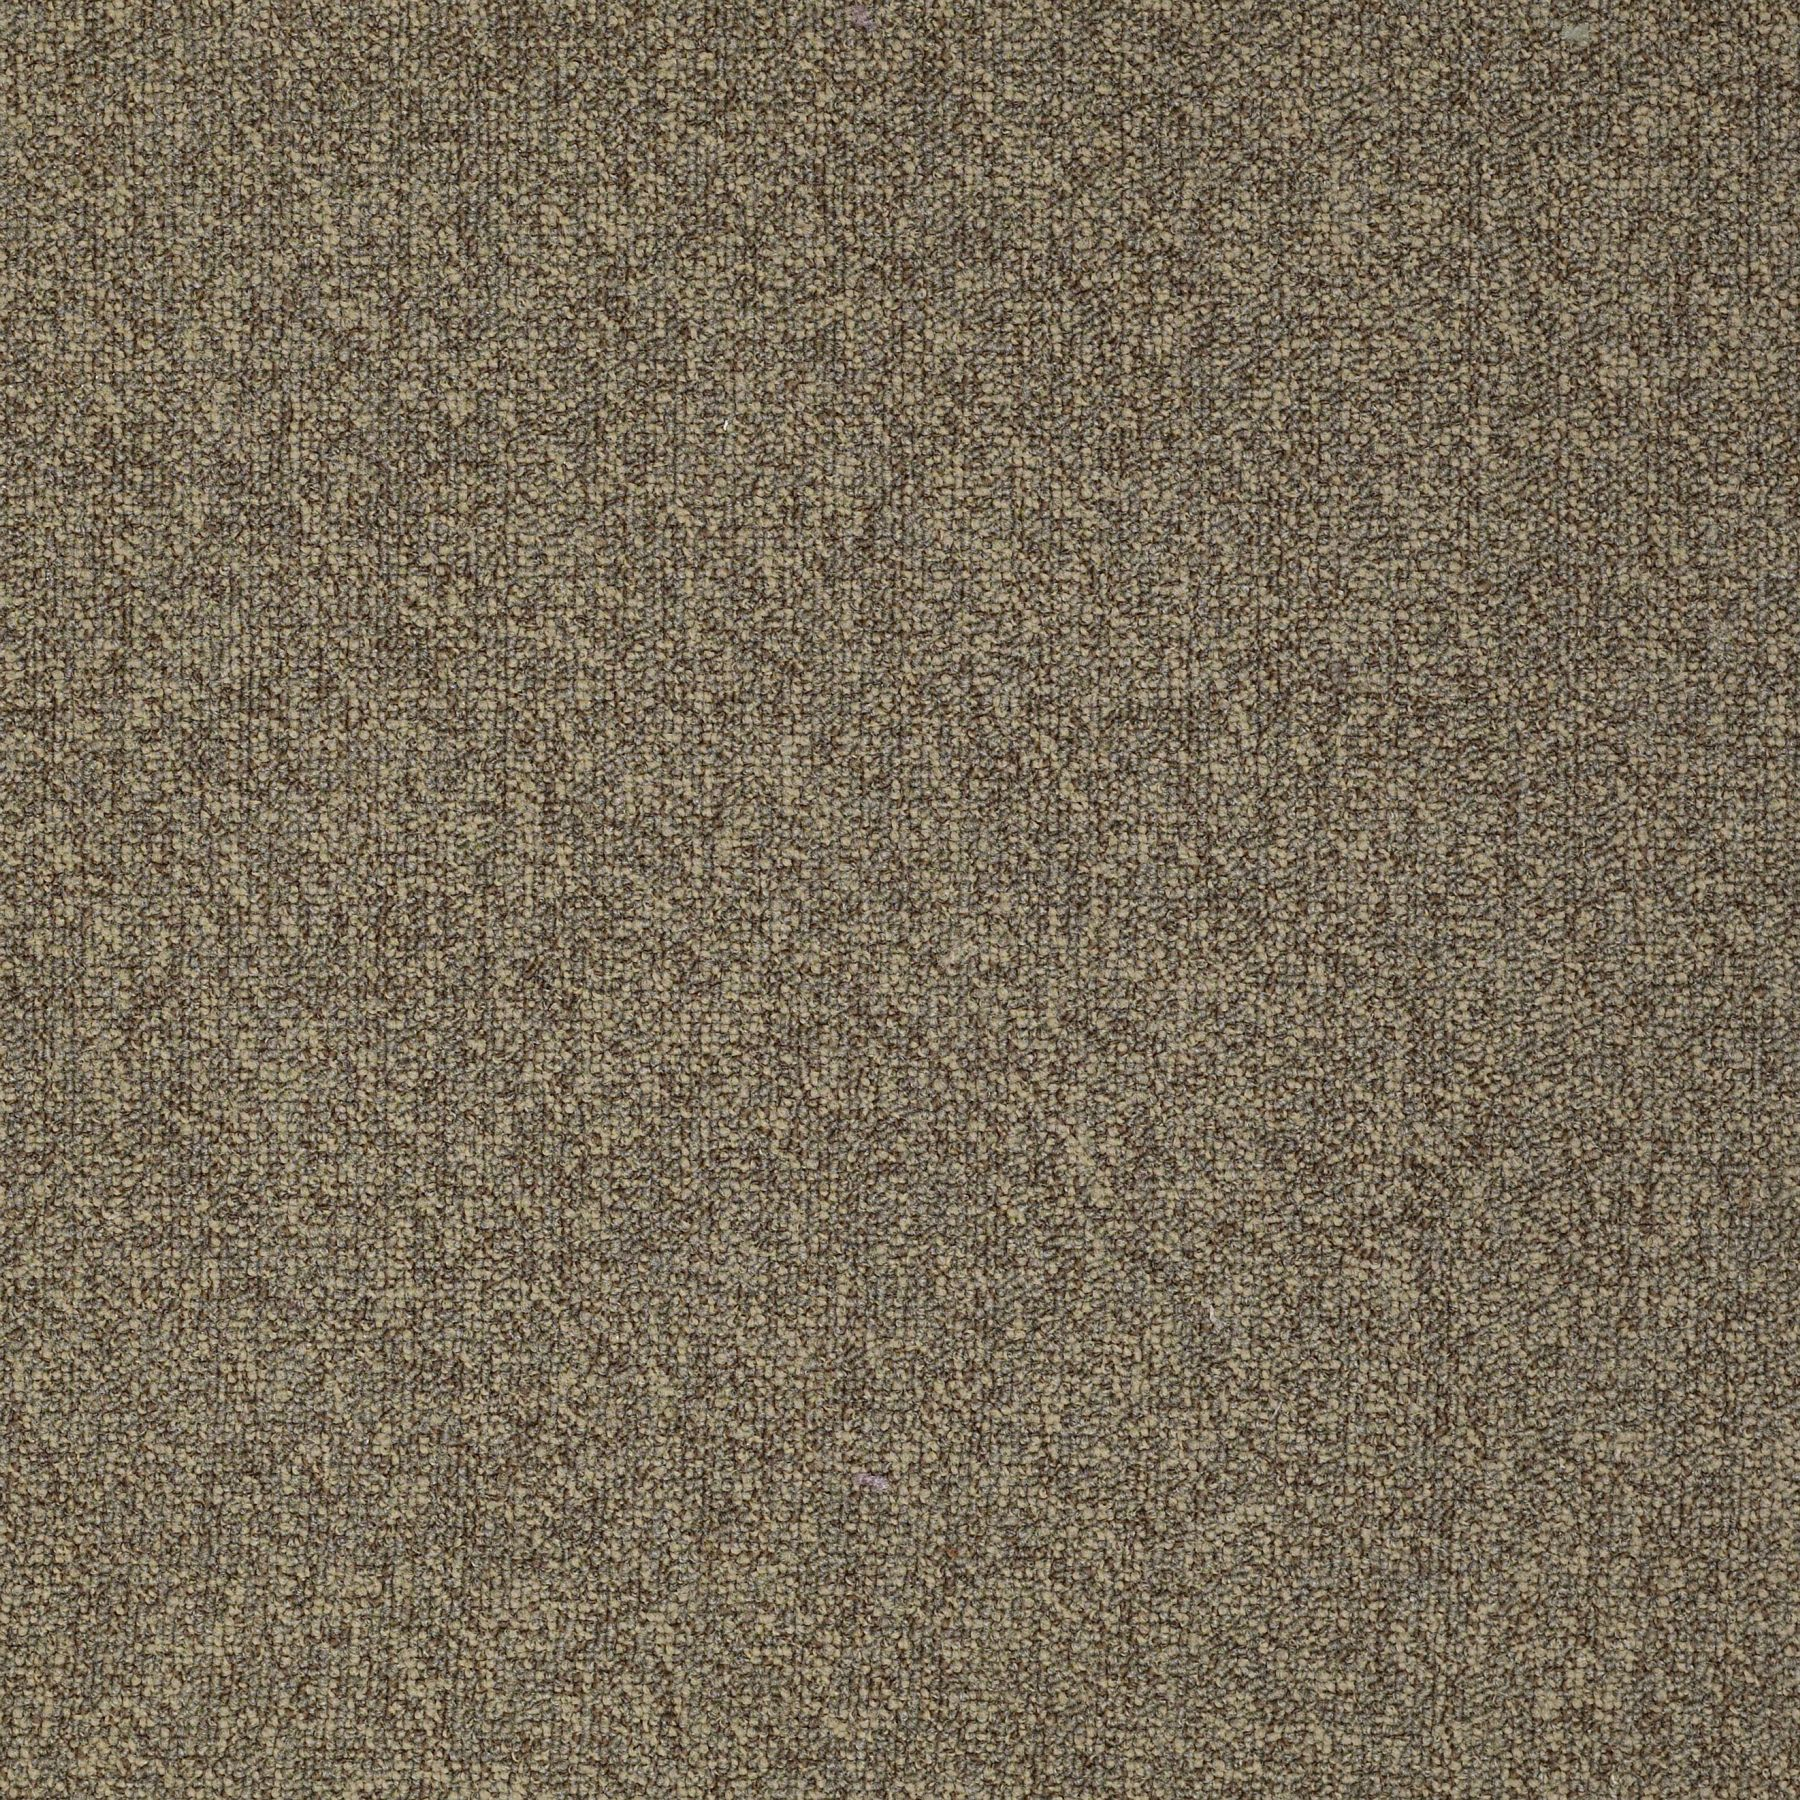 54721 Scoreboard II 26 Color 00110 Play Off Commercial Carpet